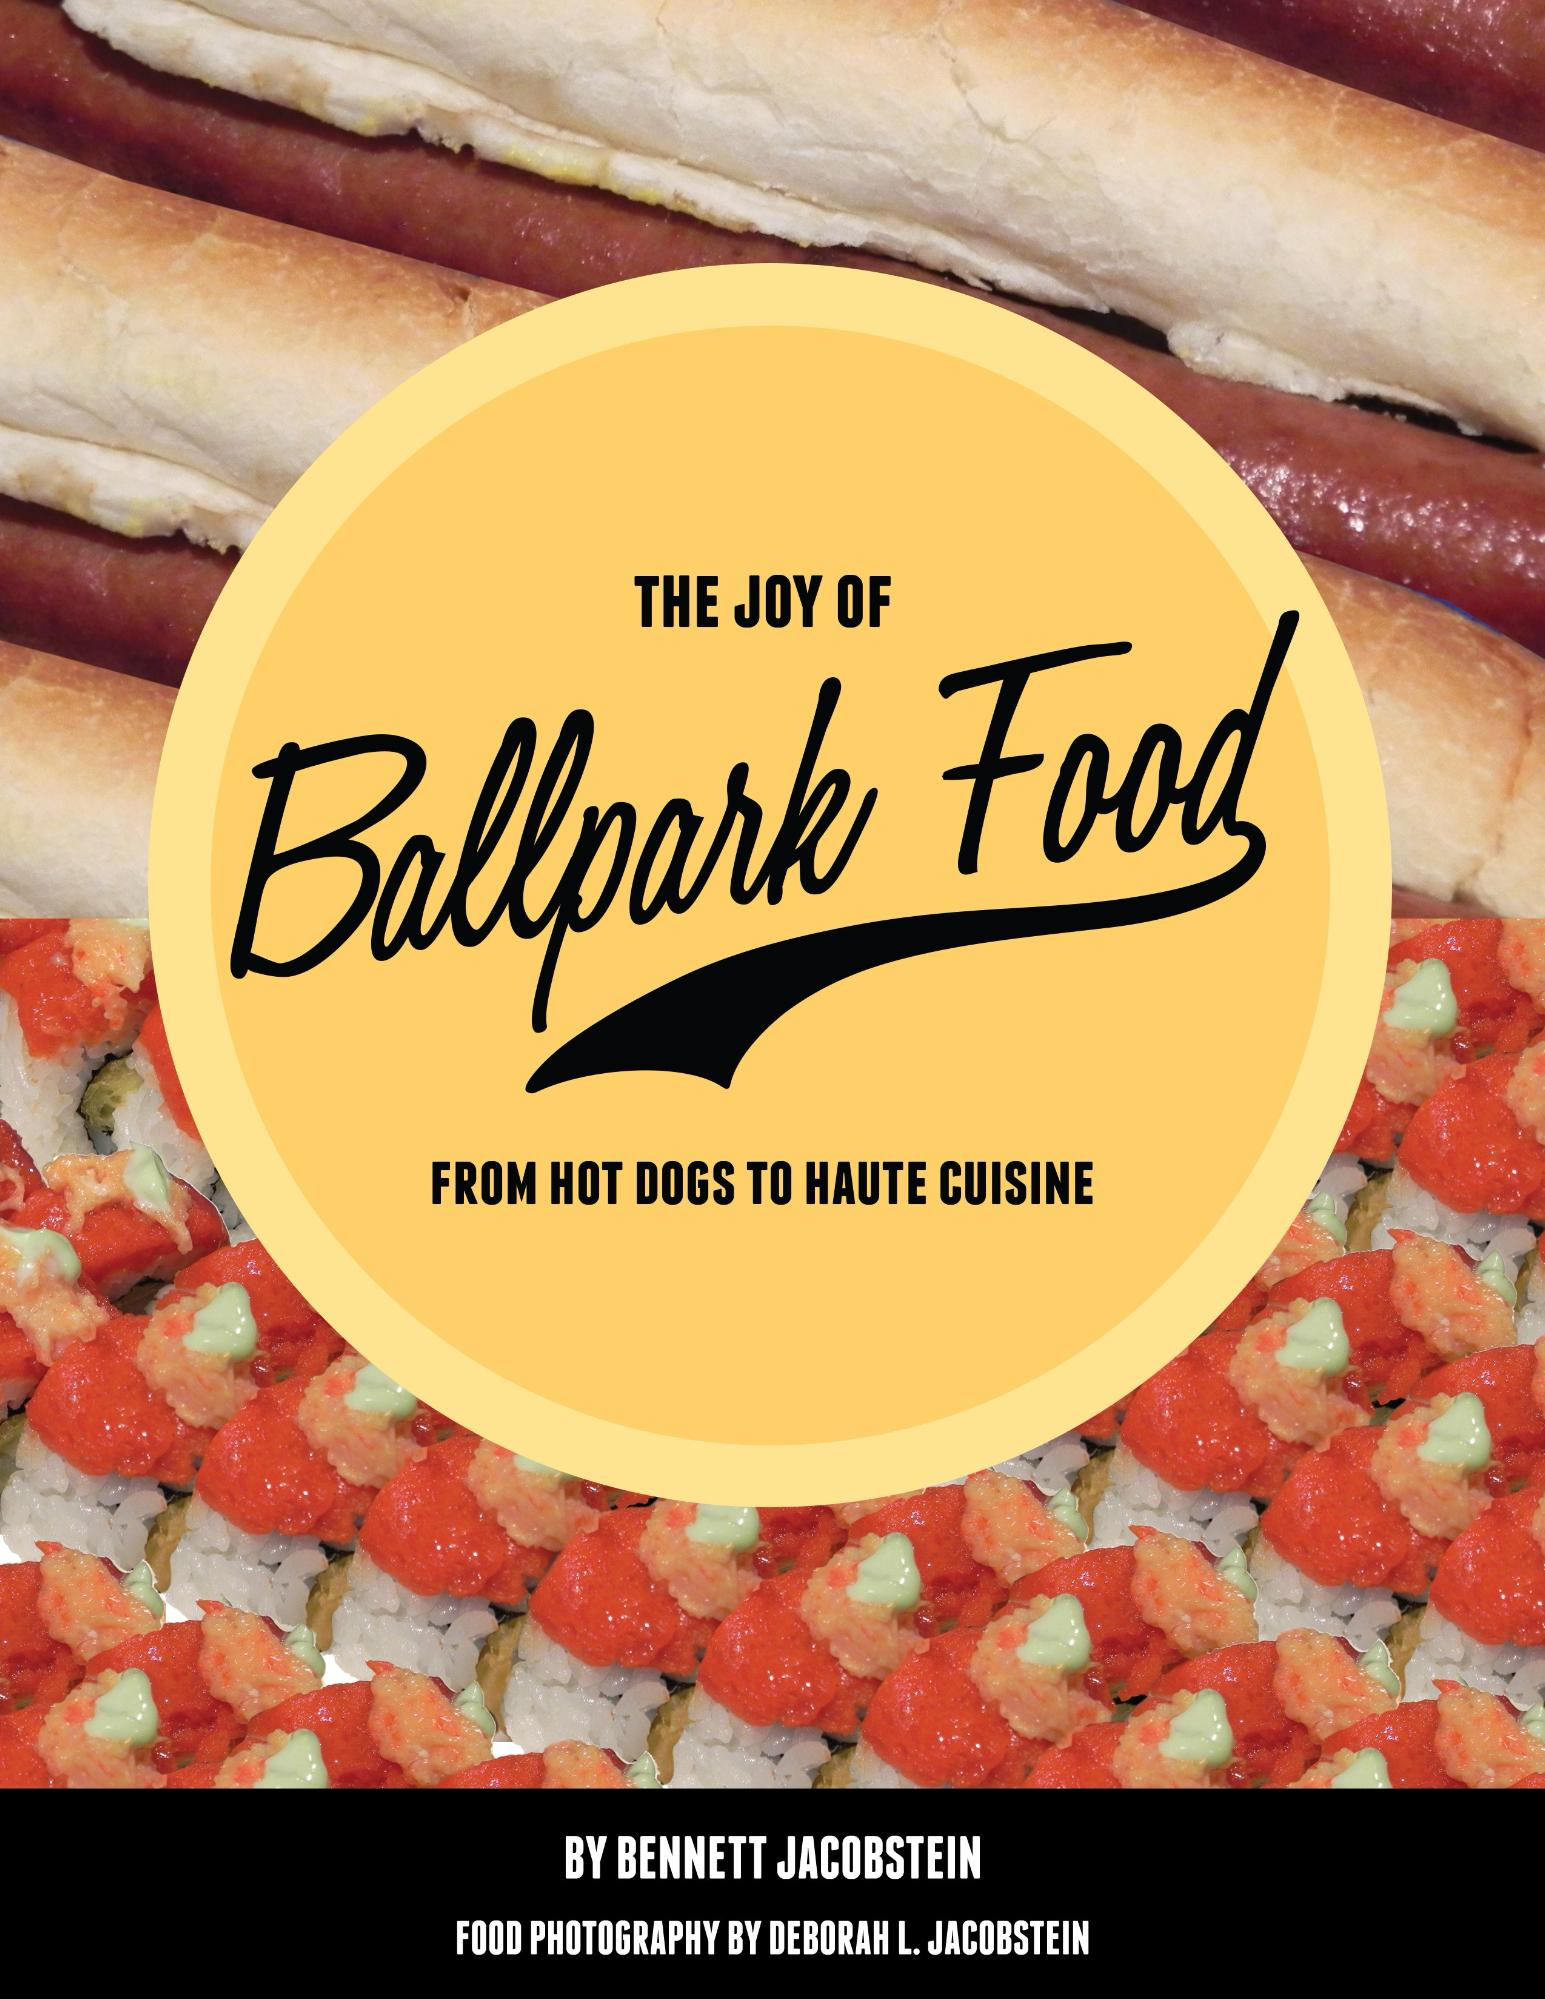 The Joy of Ballpark Food Book Cover